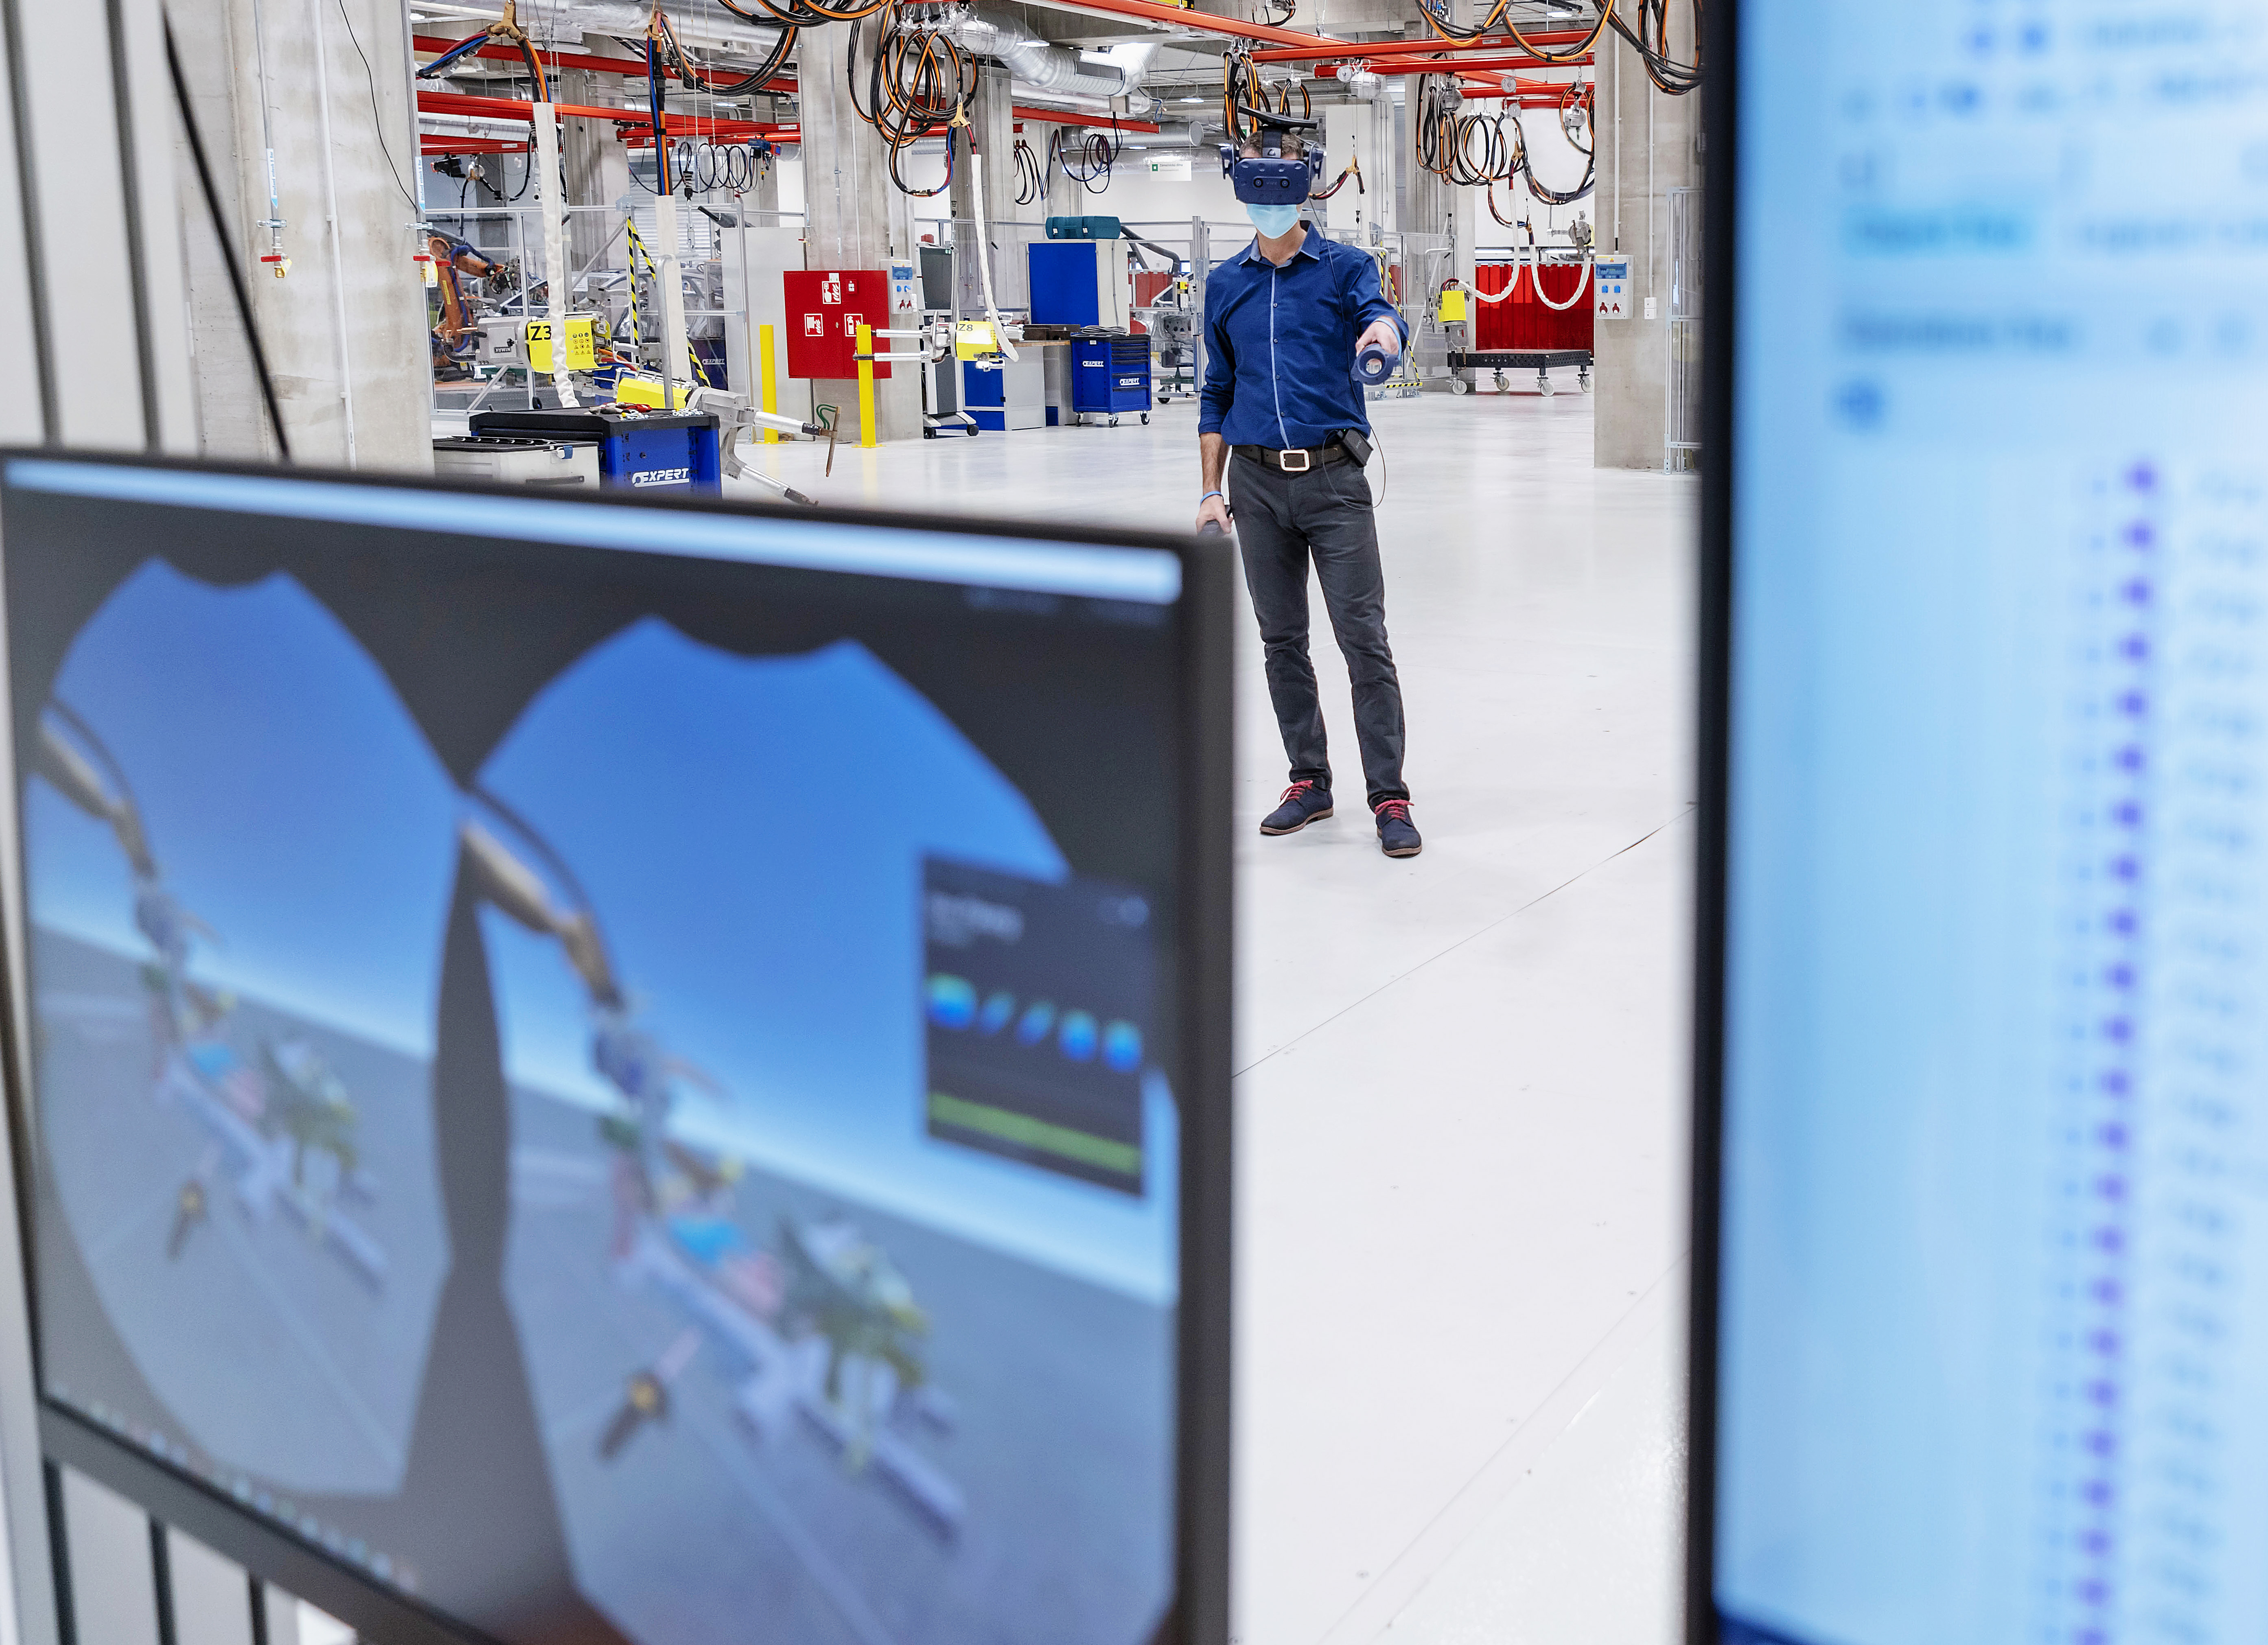 SKODA AUTO opens new centre in Mladá Boleslav to build test vehicles and prototypes - Image 1